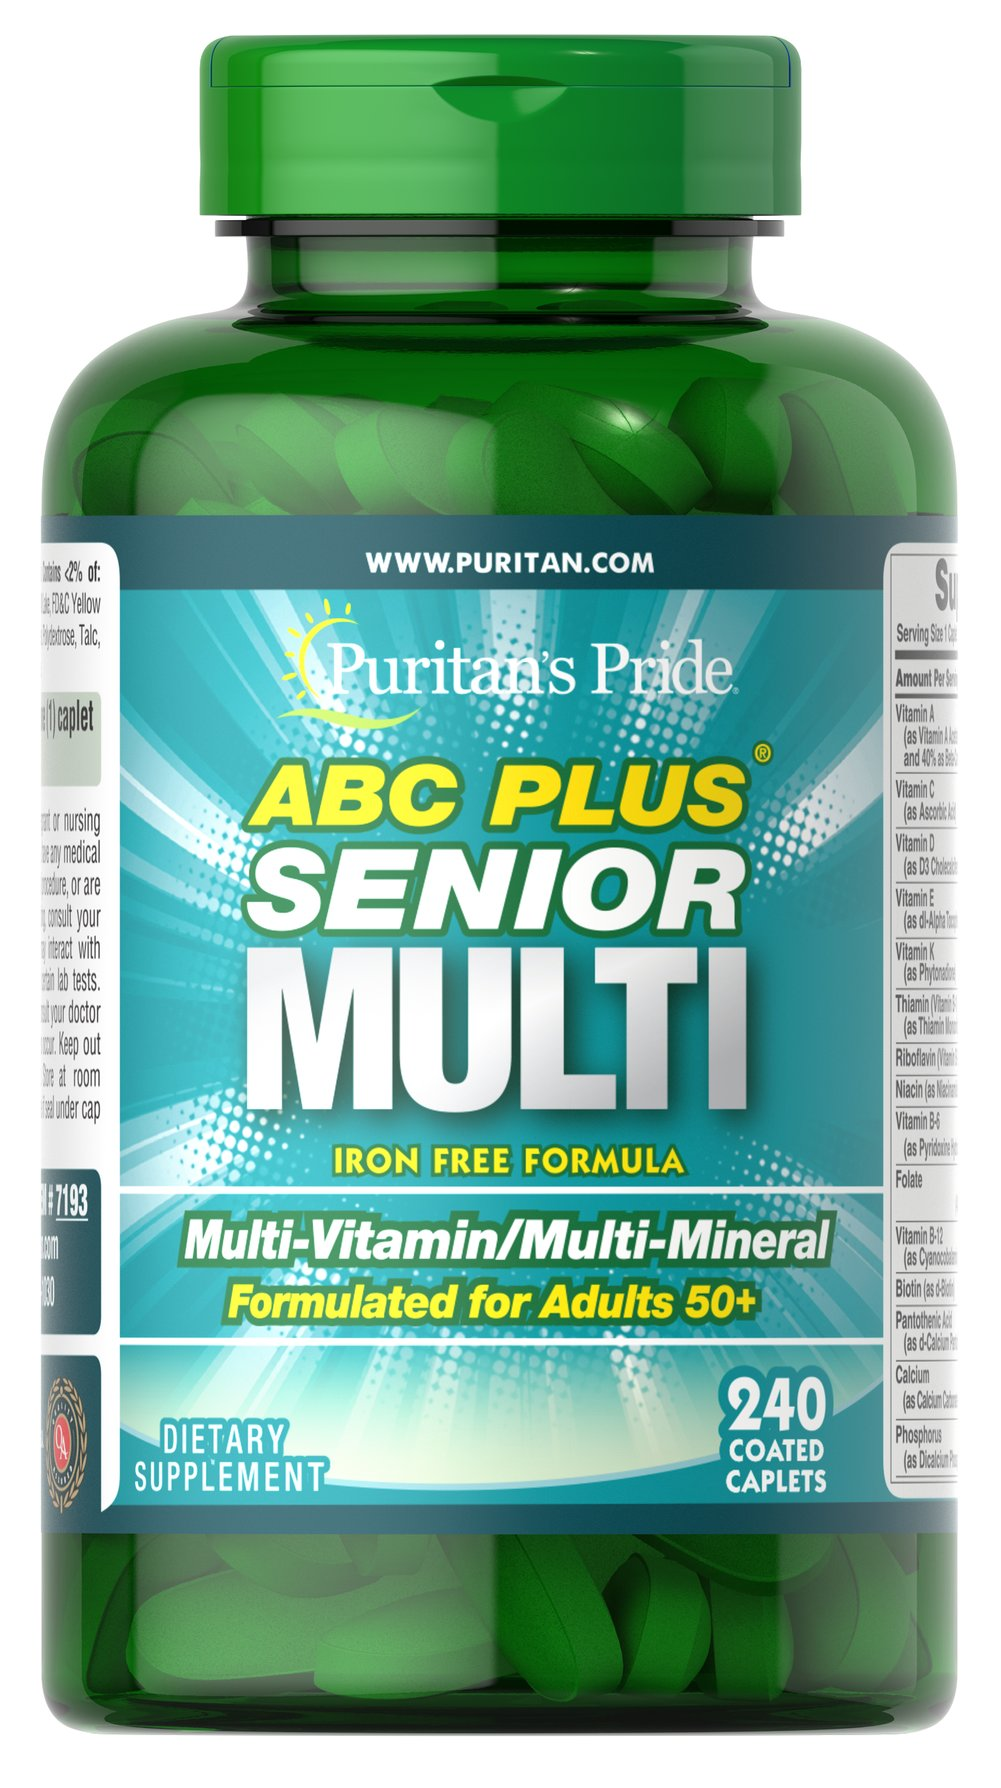 ABC Plus® Senior Multivitamin Multi-Mineral Formula